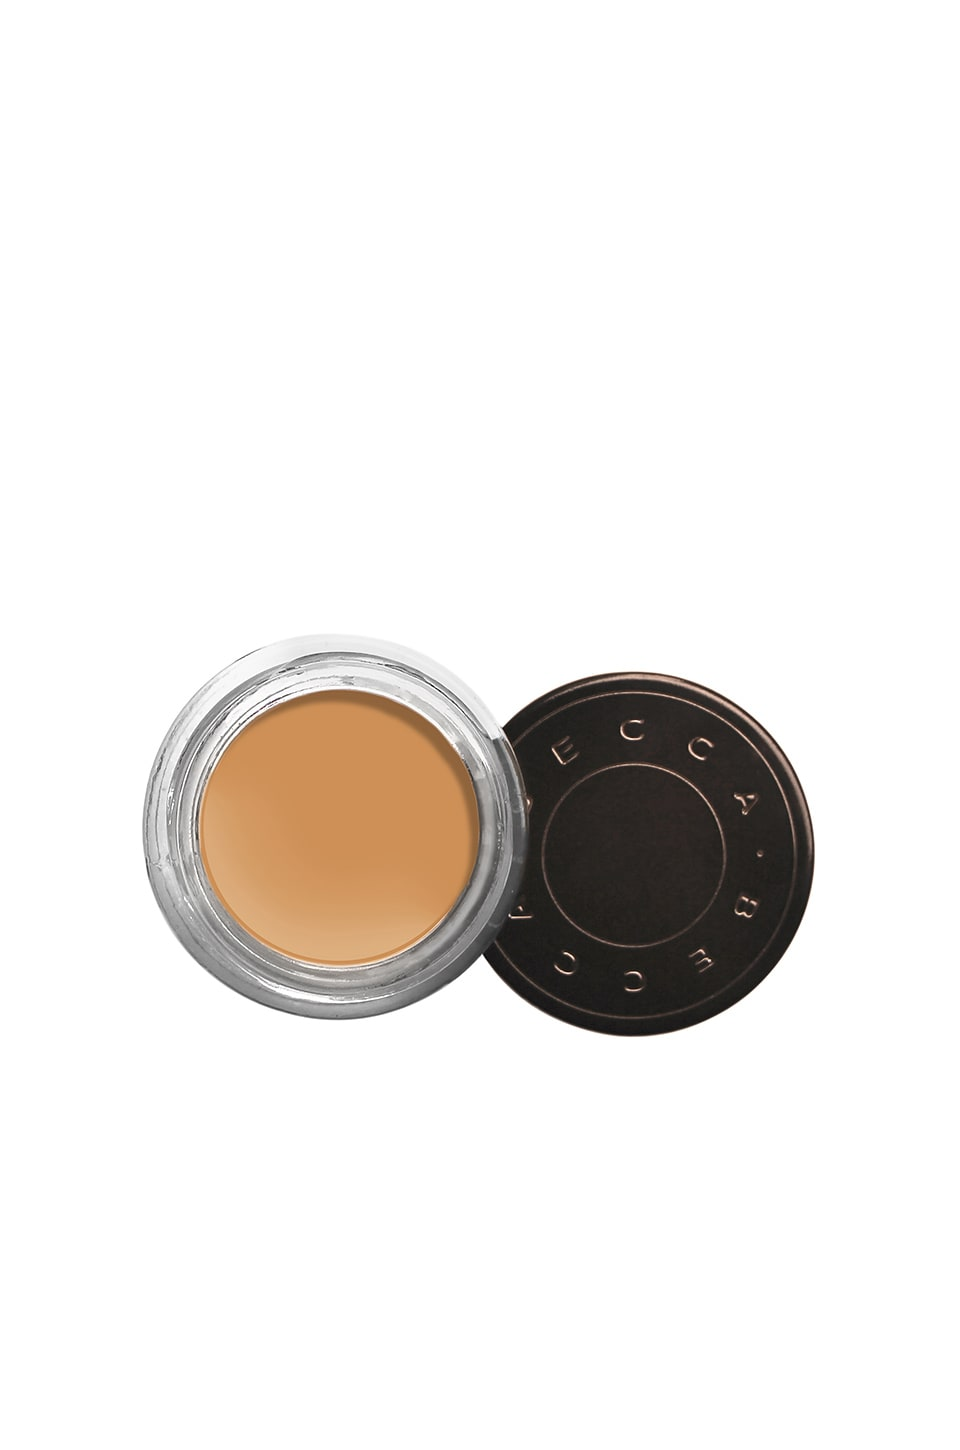 BECCA Ultimate Coverage Concealing Creme in Honeycomb